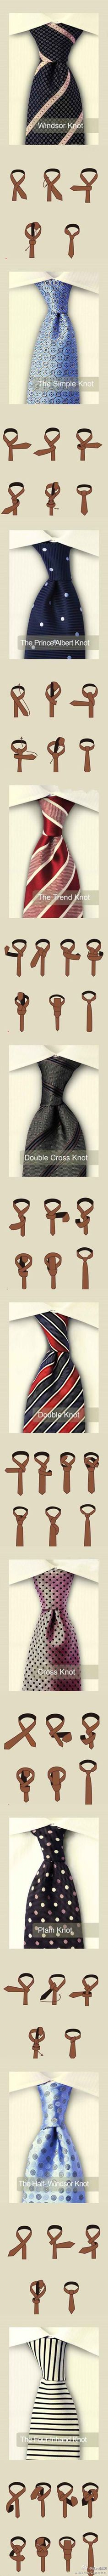 How to tie a tie!      #diy #tutorial #men